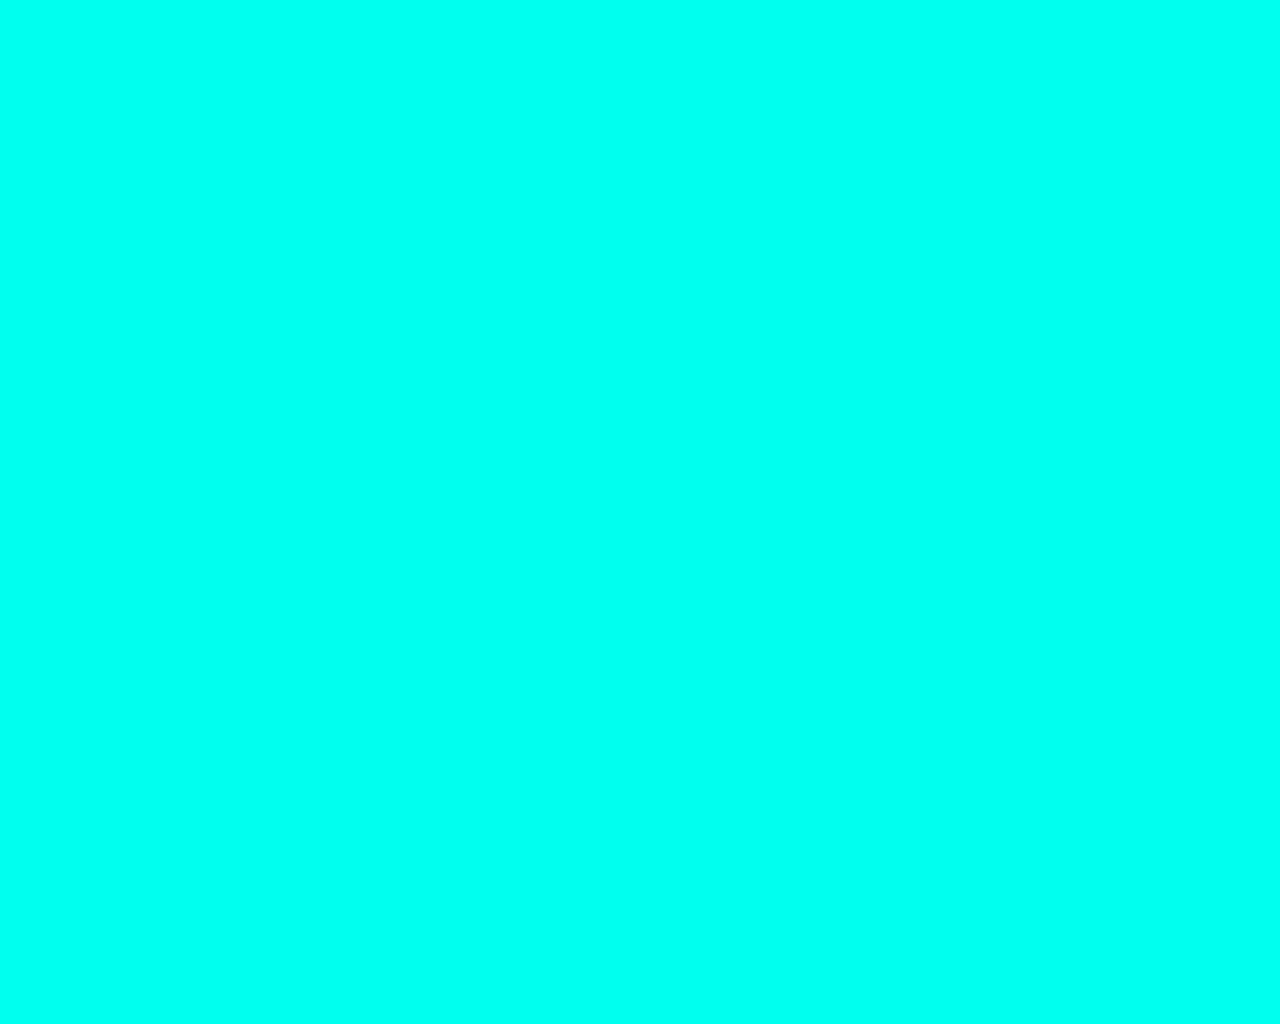 1280x1024 Turquoise Blue Solid Color Background